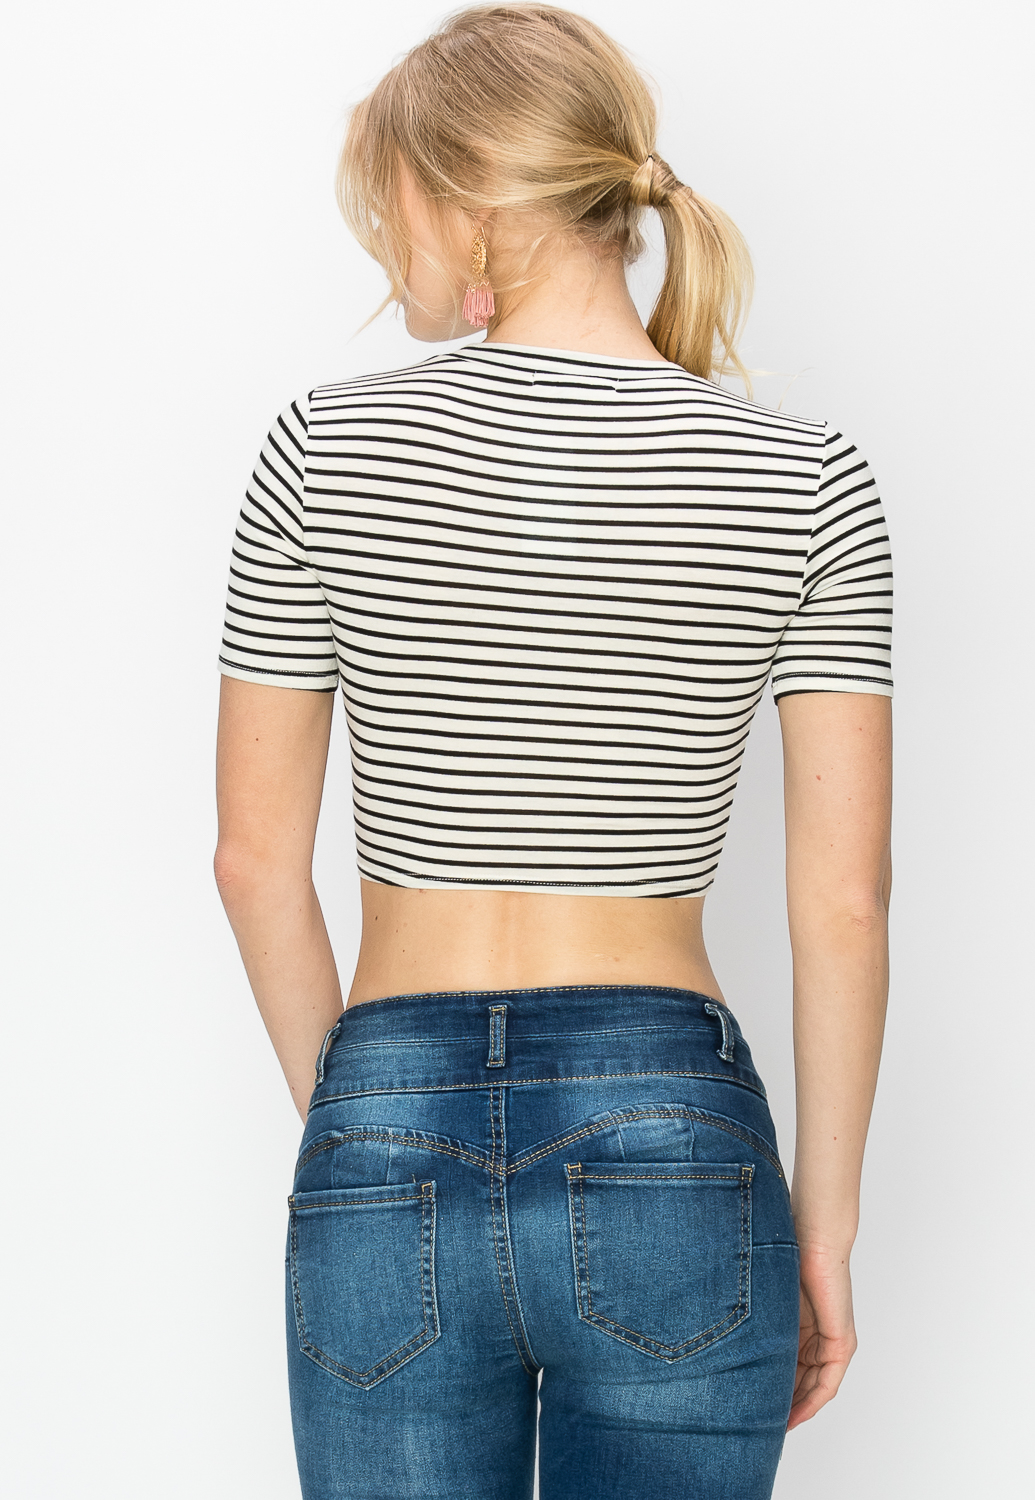 Knotted Striped Top